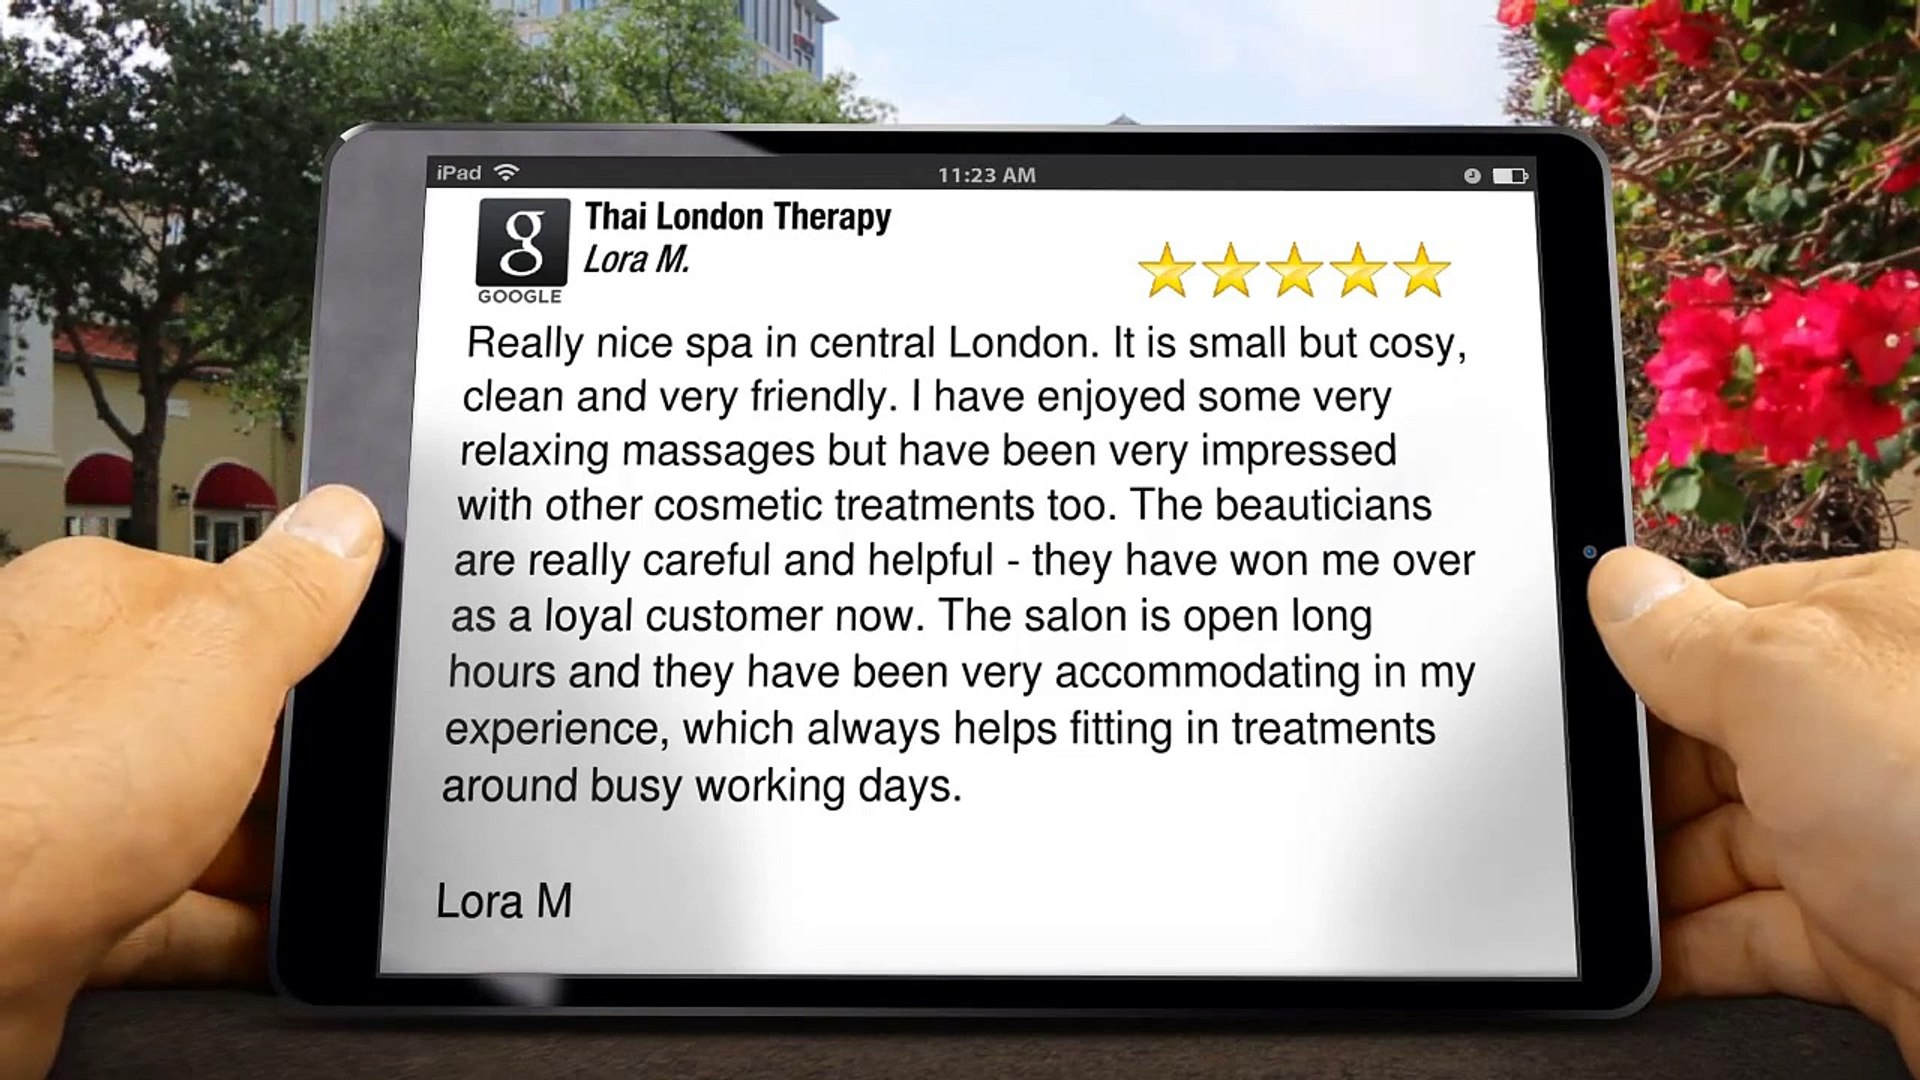 Thai London Therapy Baker Street Terrific 5 Star Review by Lora M